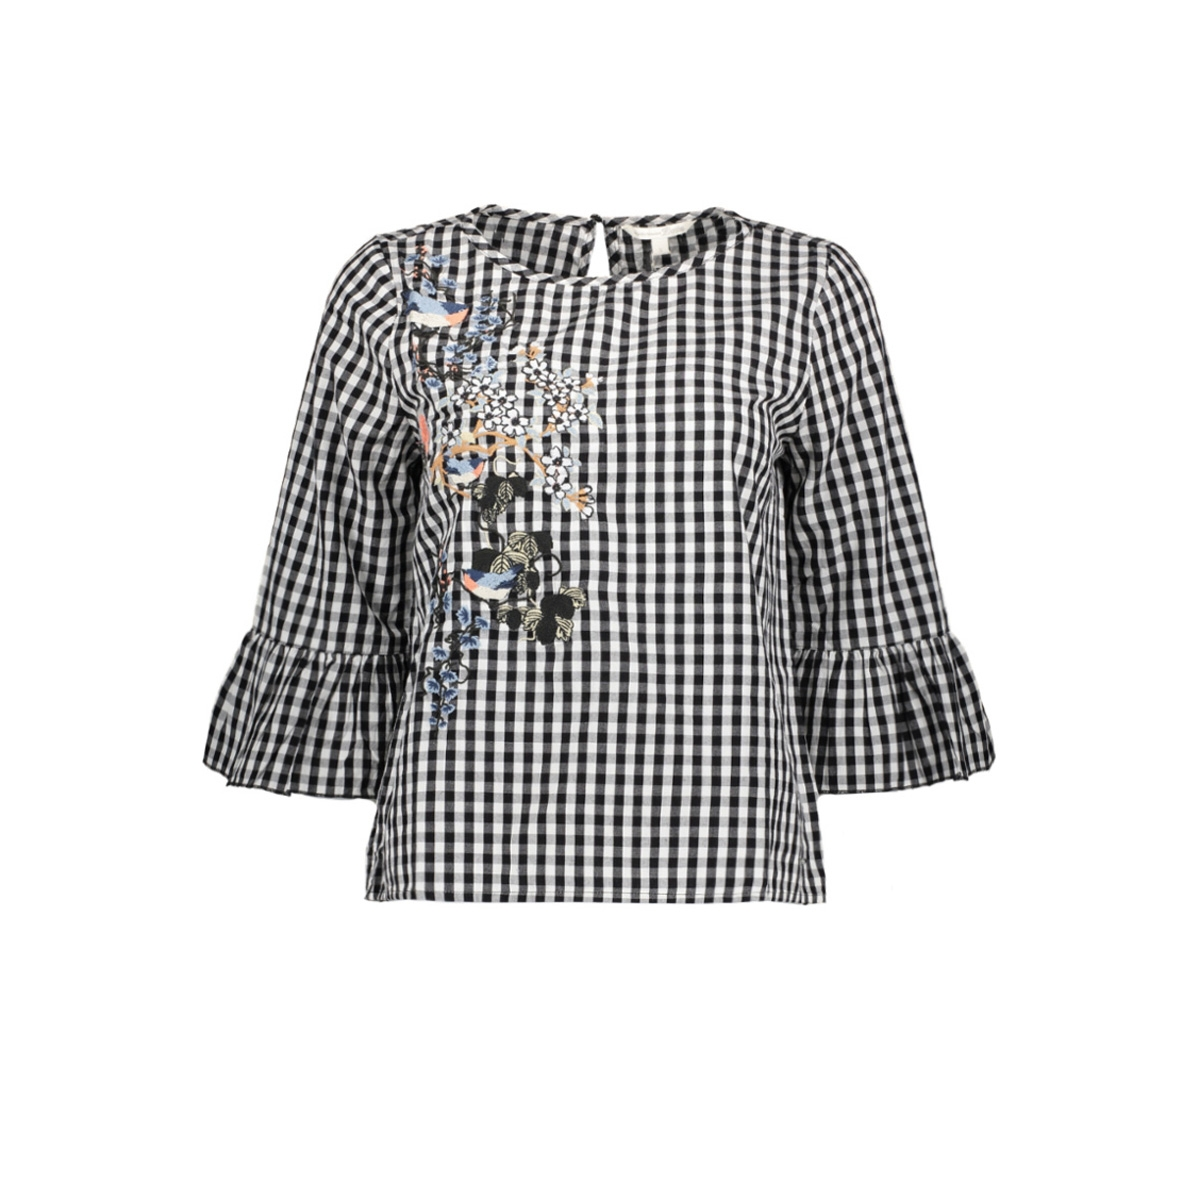 2055035.00.71 tom tailor blouse 1008